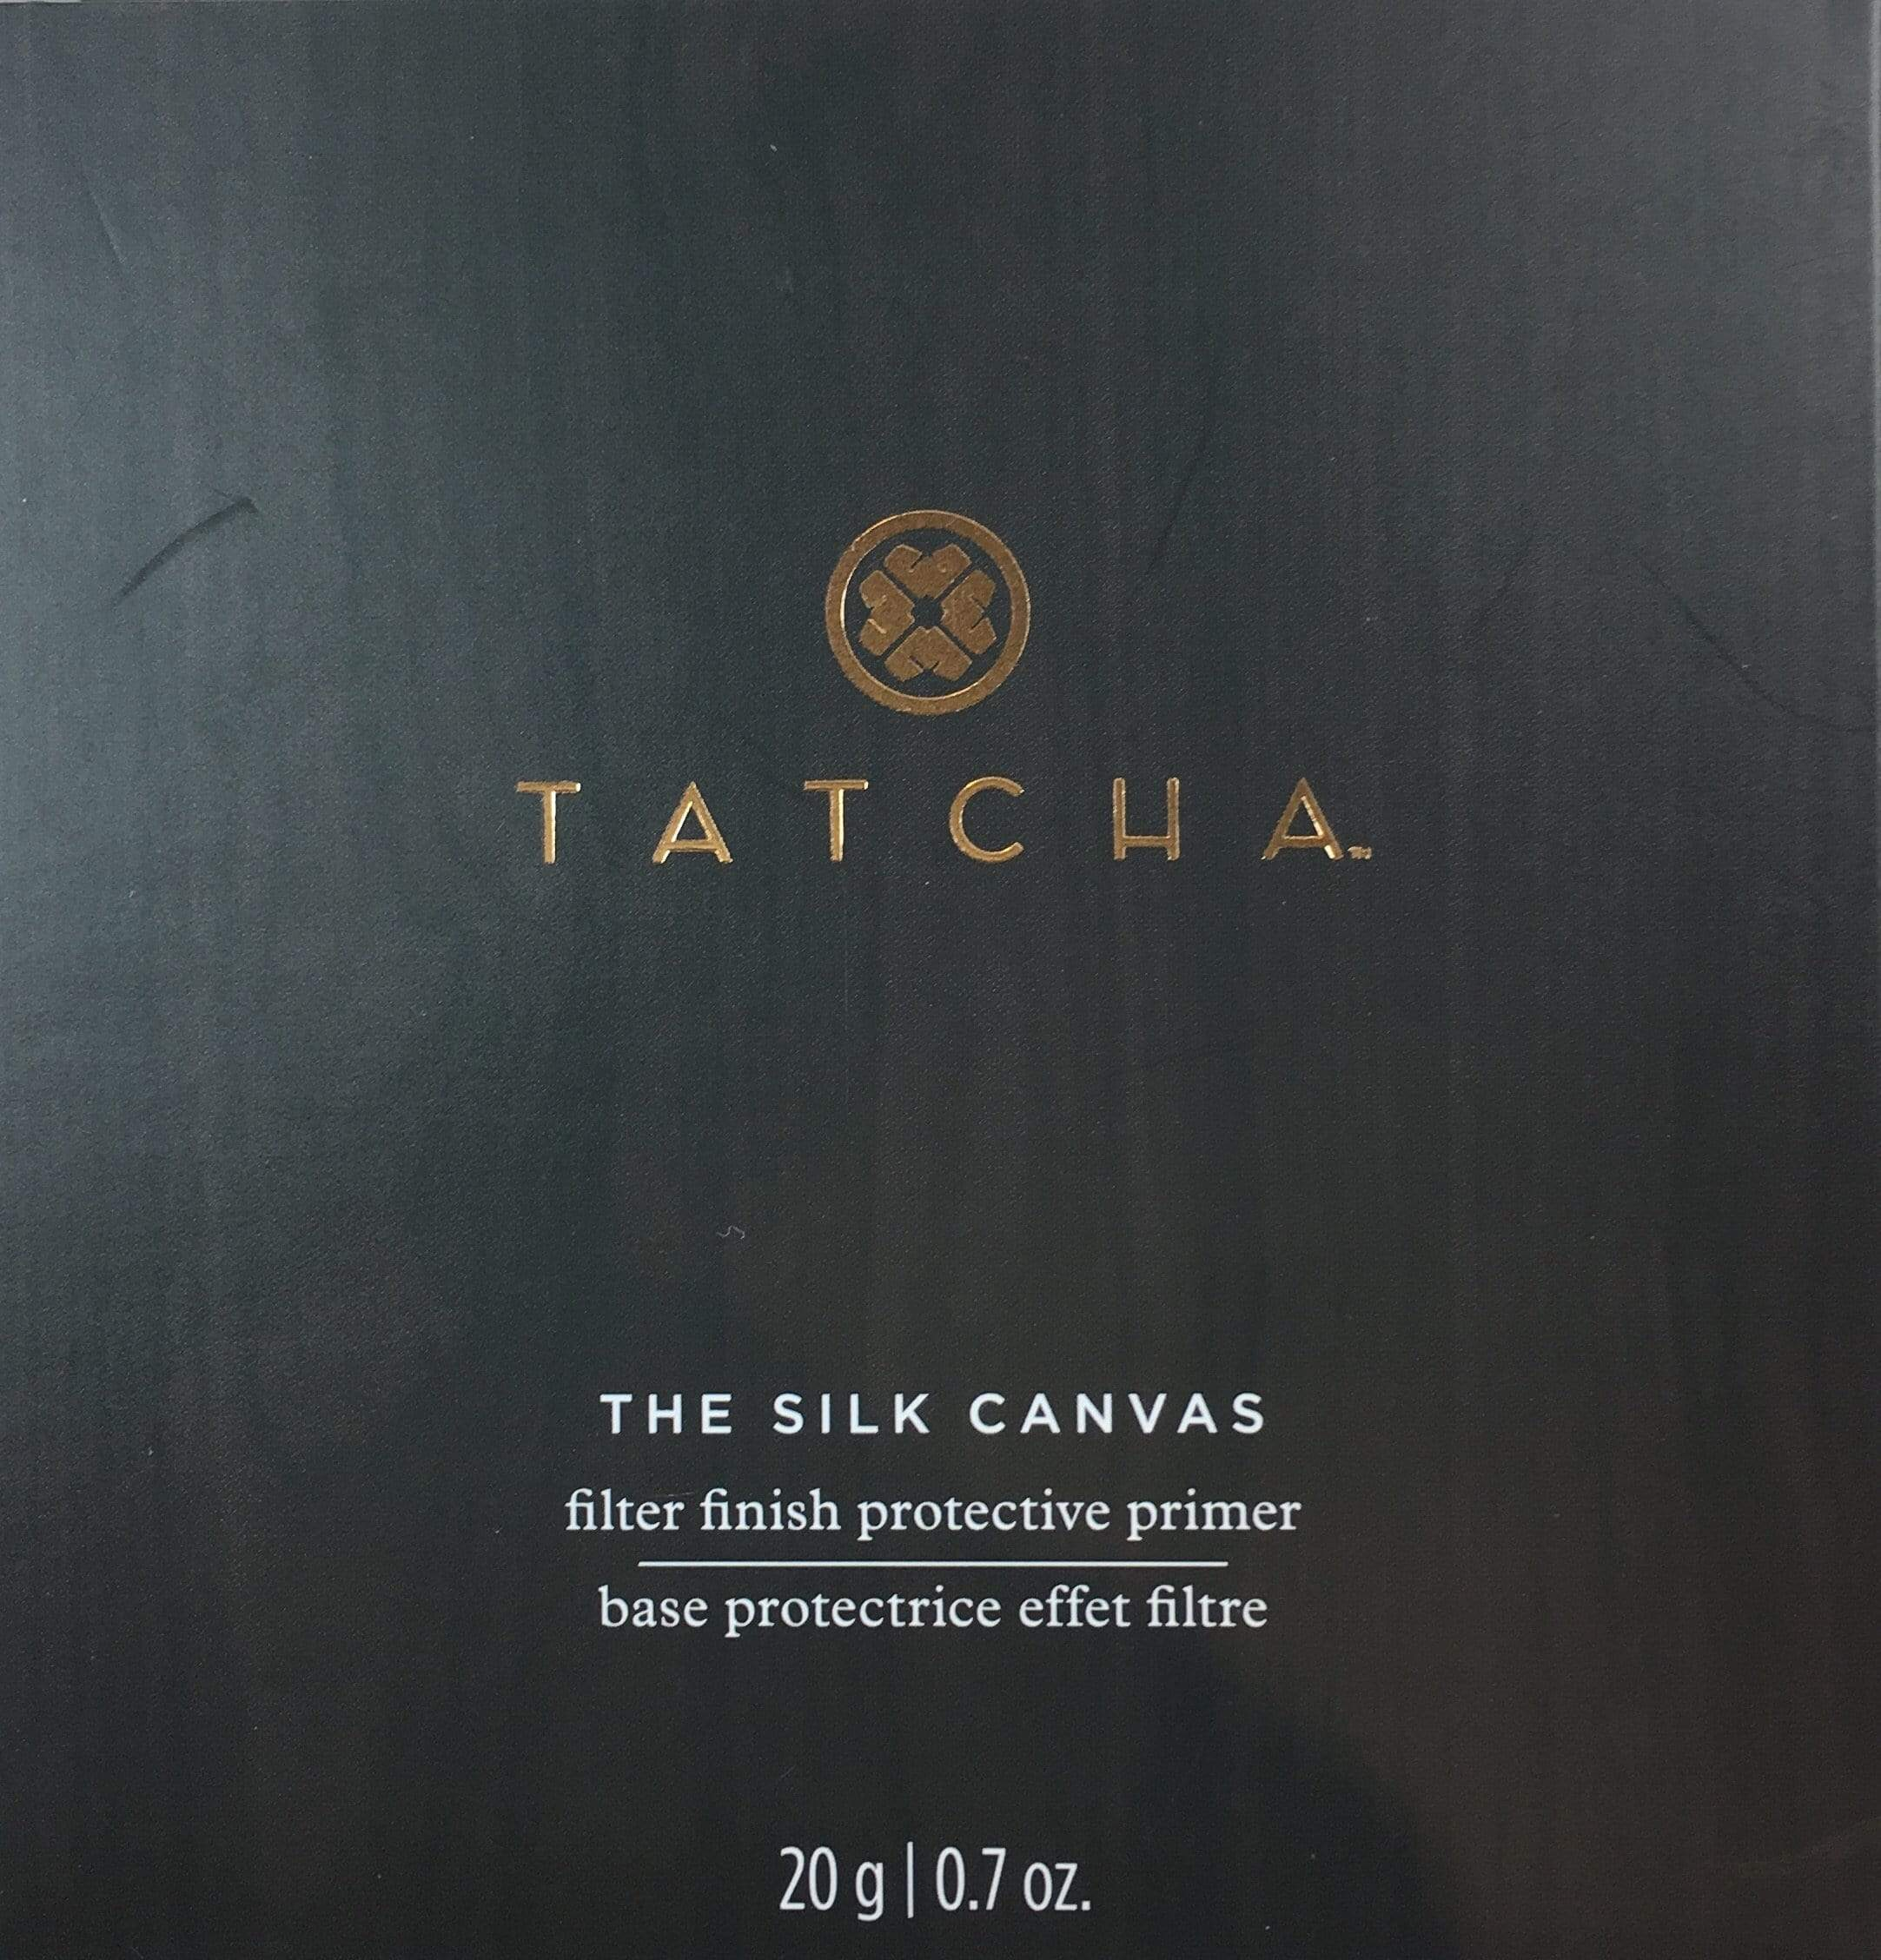 Tatcha primer TATCHA The Silk Canvas Protective Primer (20 g | .7 oz.)